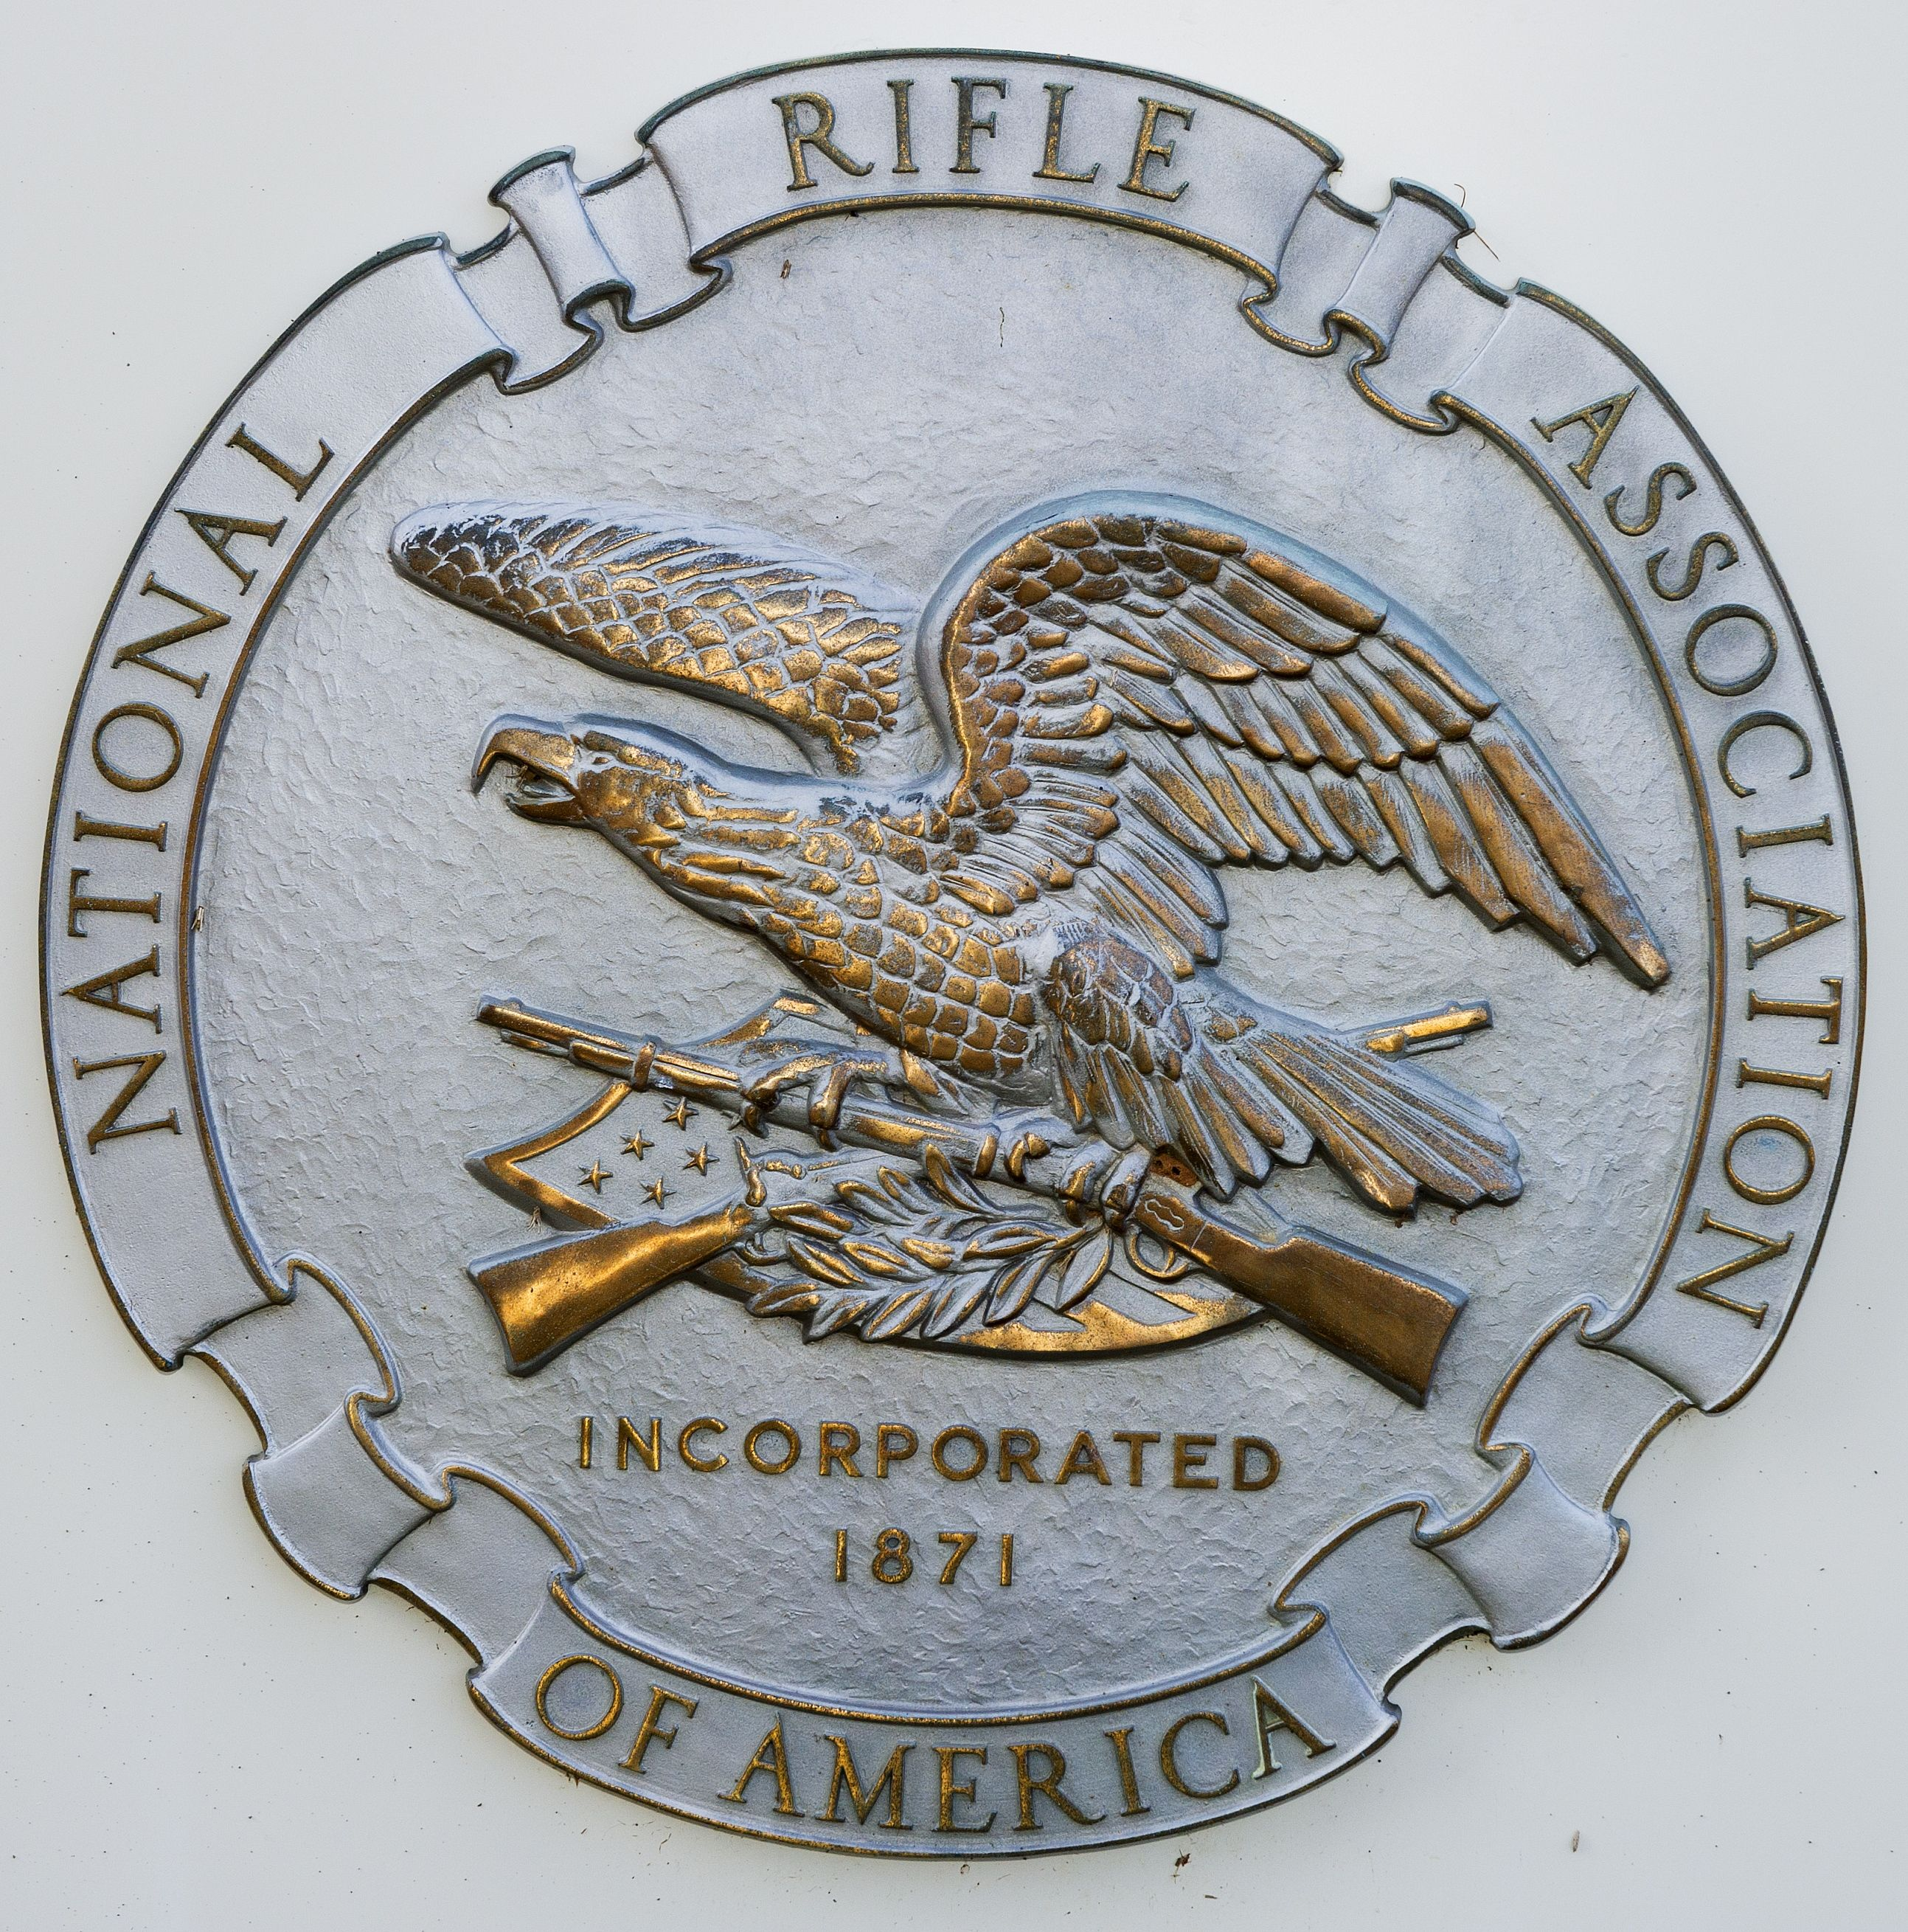 US-NATIONAL RIFLE ASSOCIATION